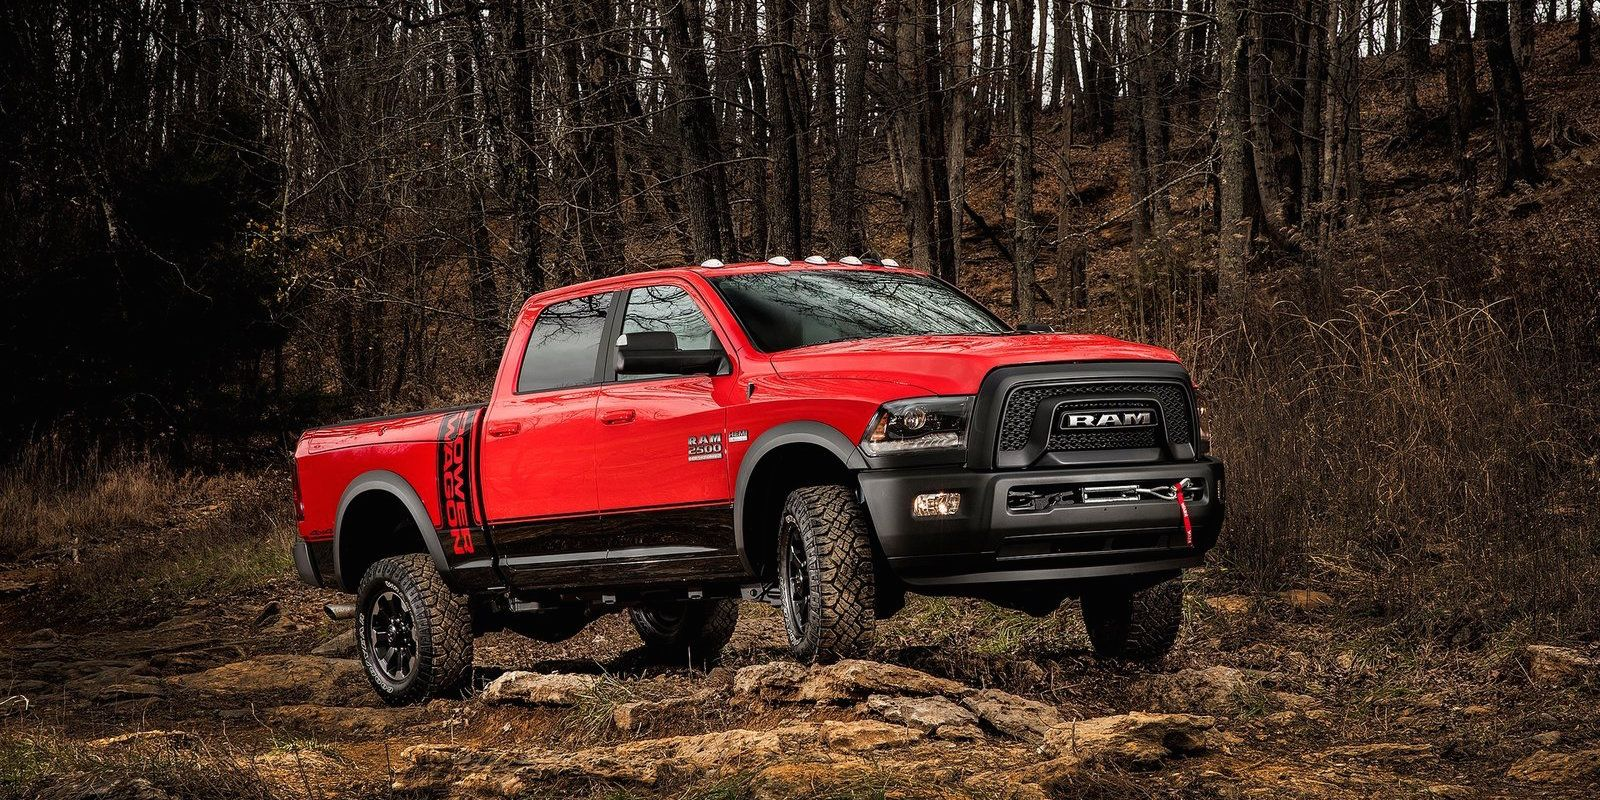 Best Off Road Vehicle Of All Time >> 23 Best Off Road Vehicles In 2019 Road Track